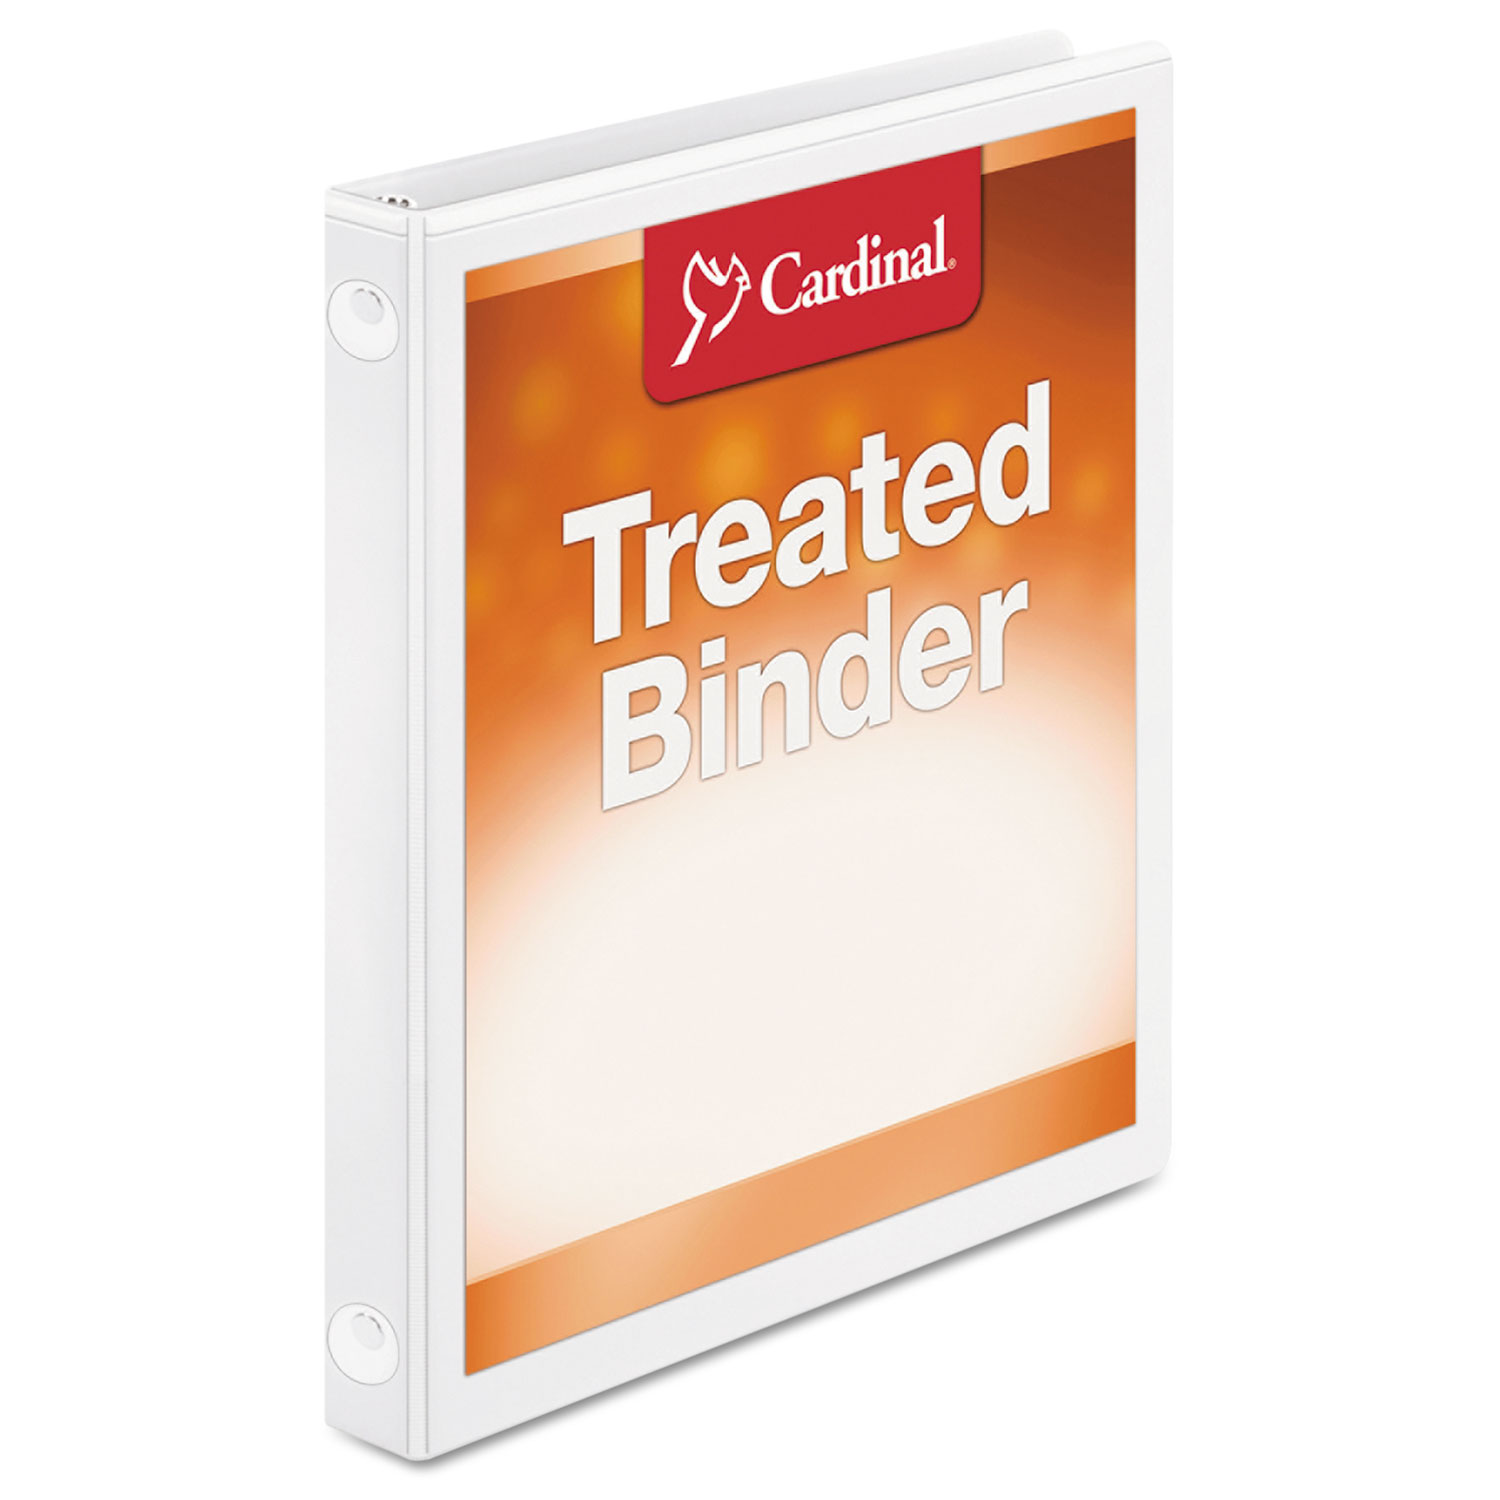 "Treated Binder ClearVue Locking Round Ring Binder, 5/8"" Cap, 11 x 8 1/2, White"